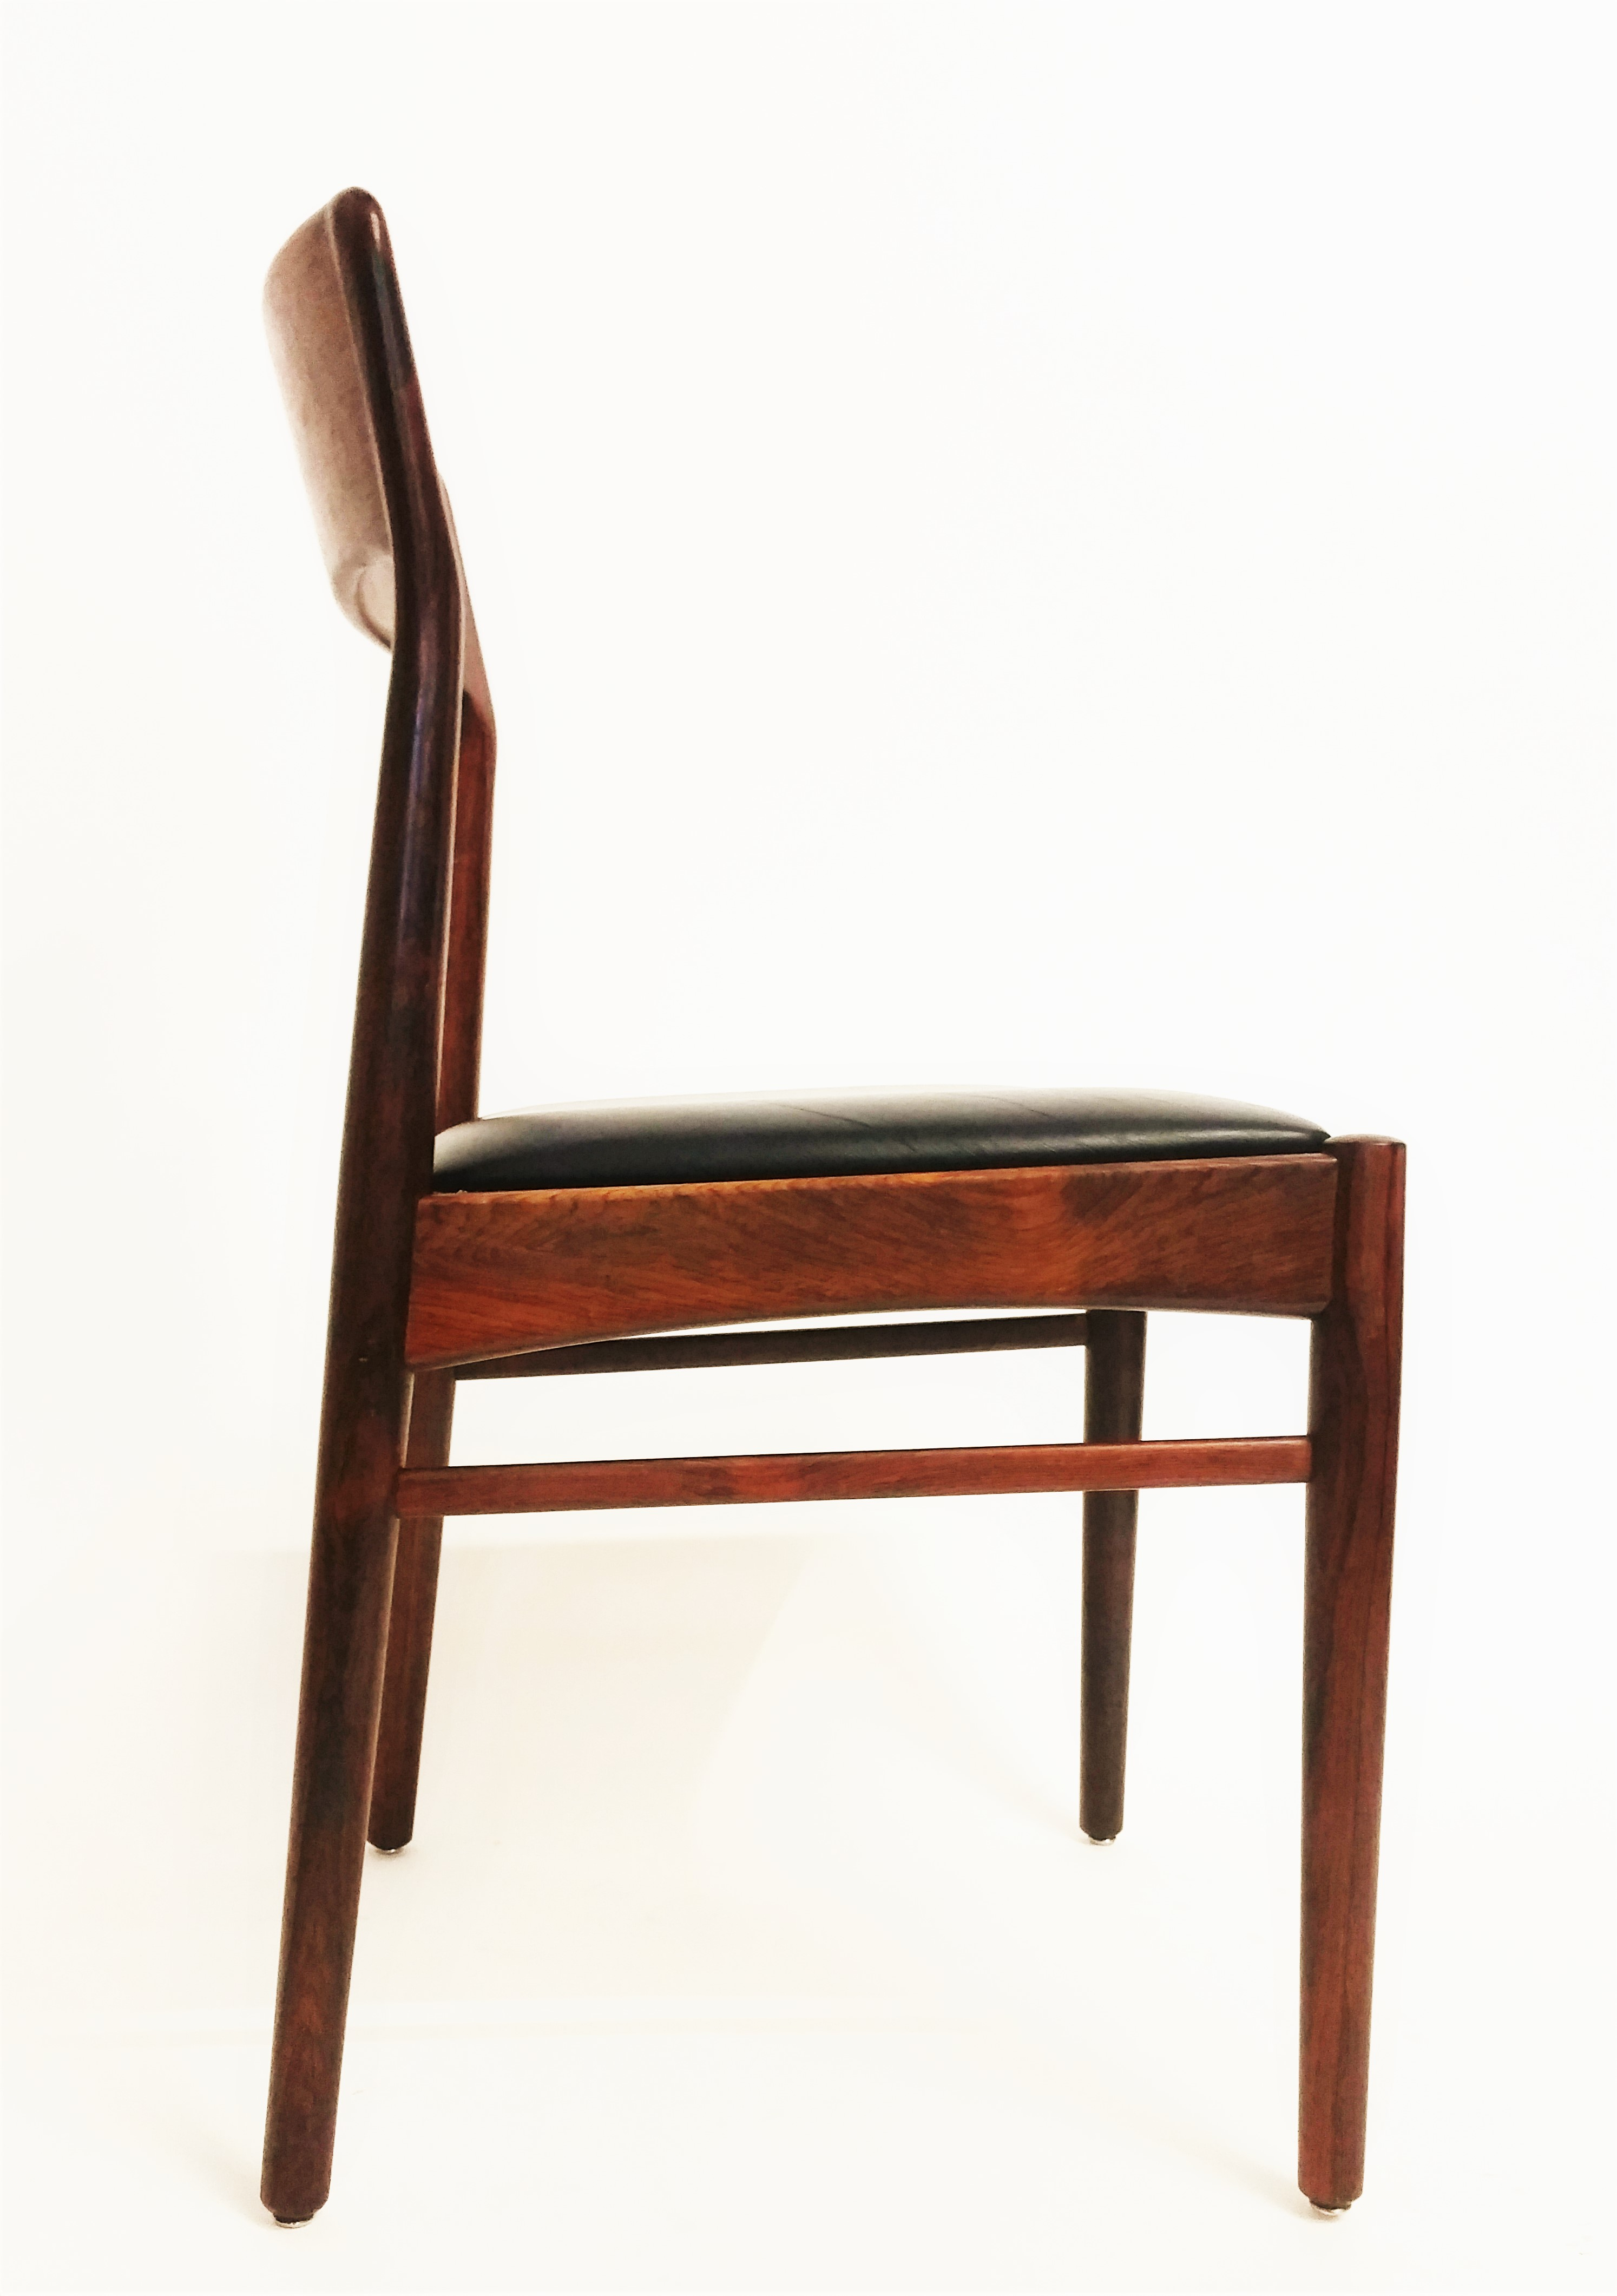 KS  Korup Stolefabrik rose wood dining chairs